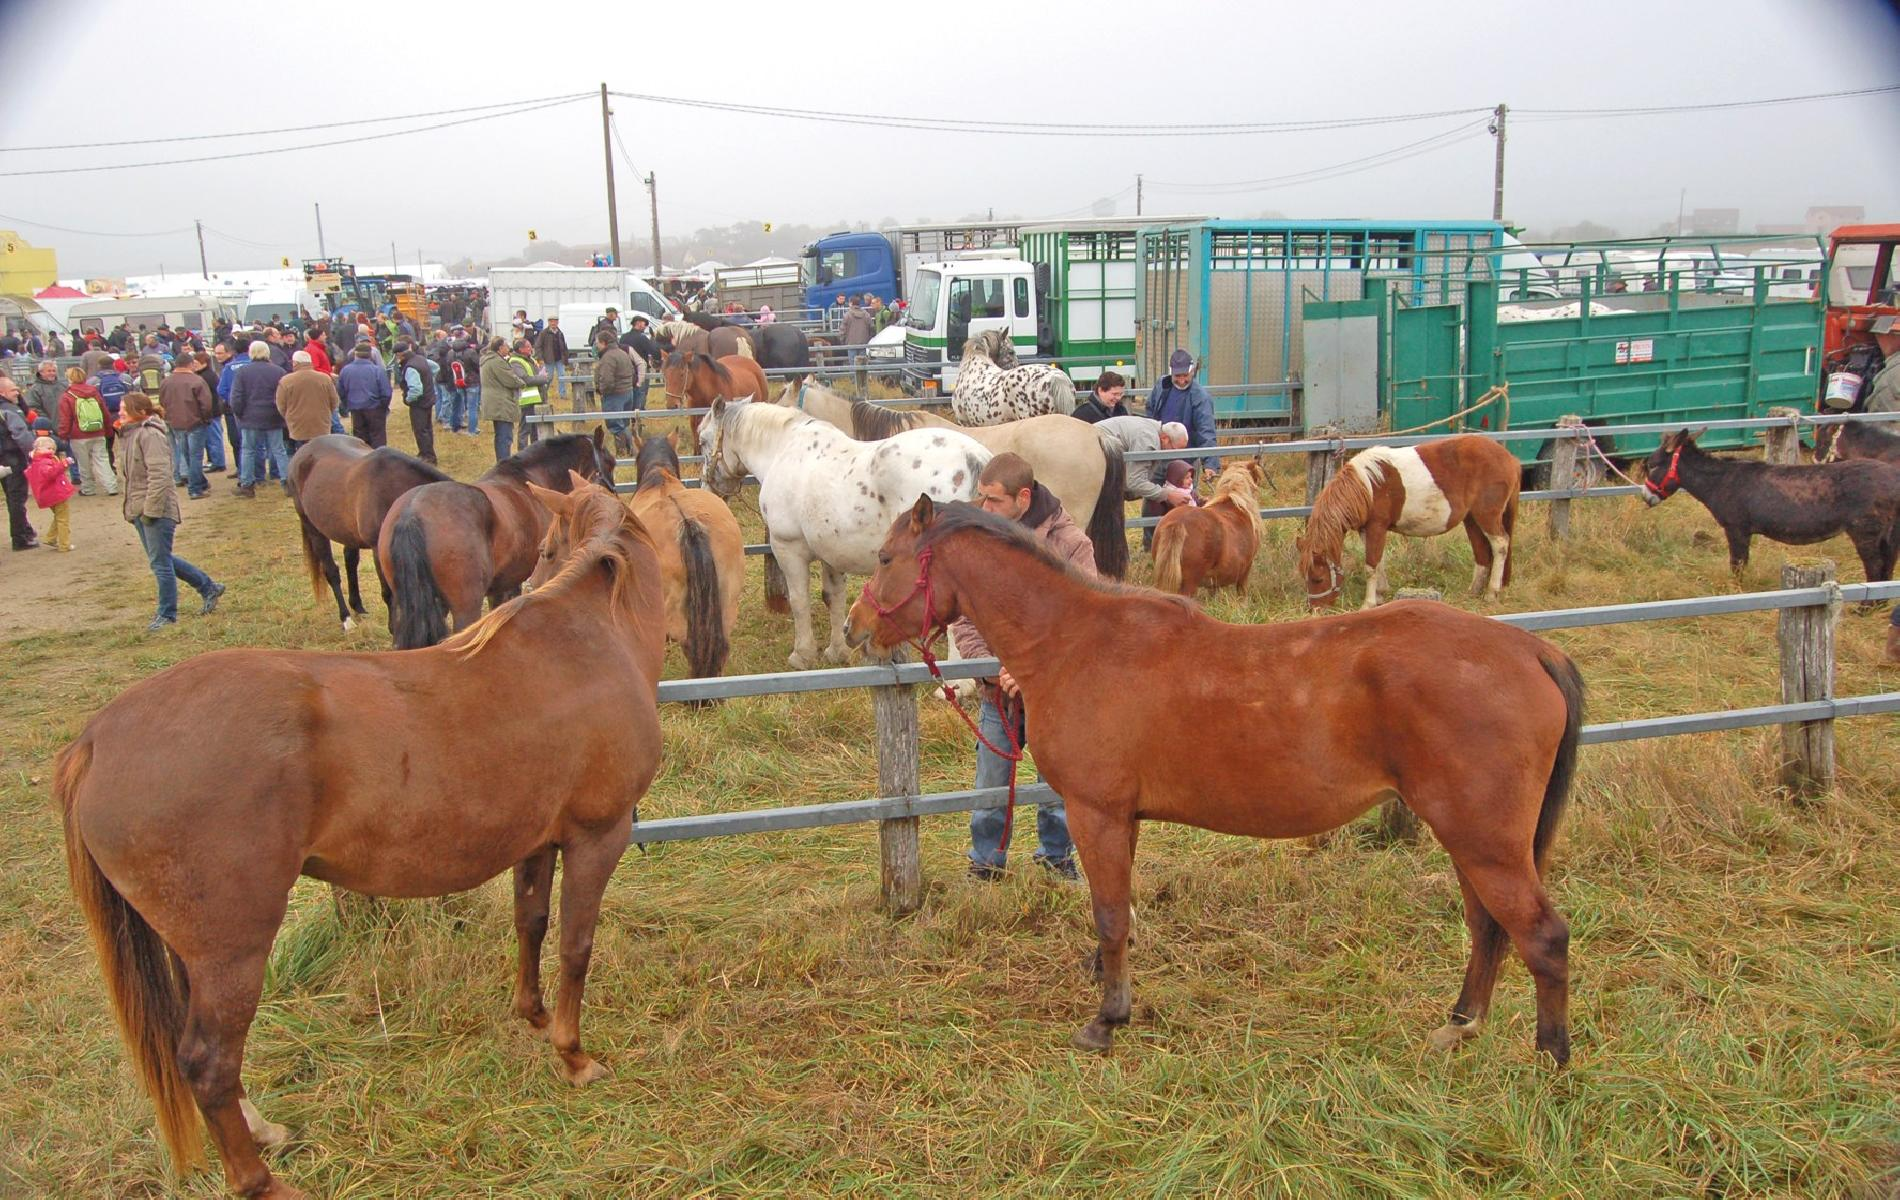 The agricultural fair of Poussay